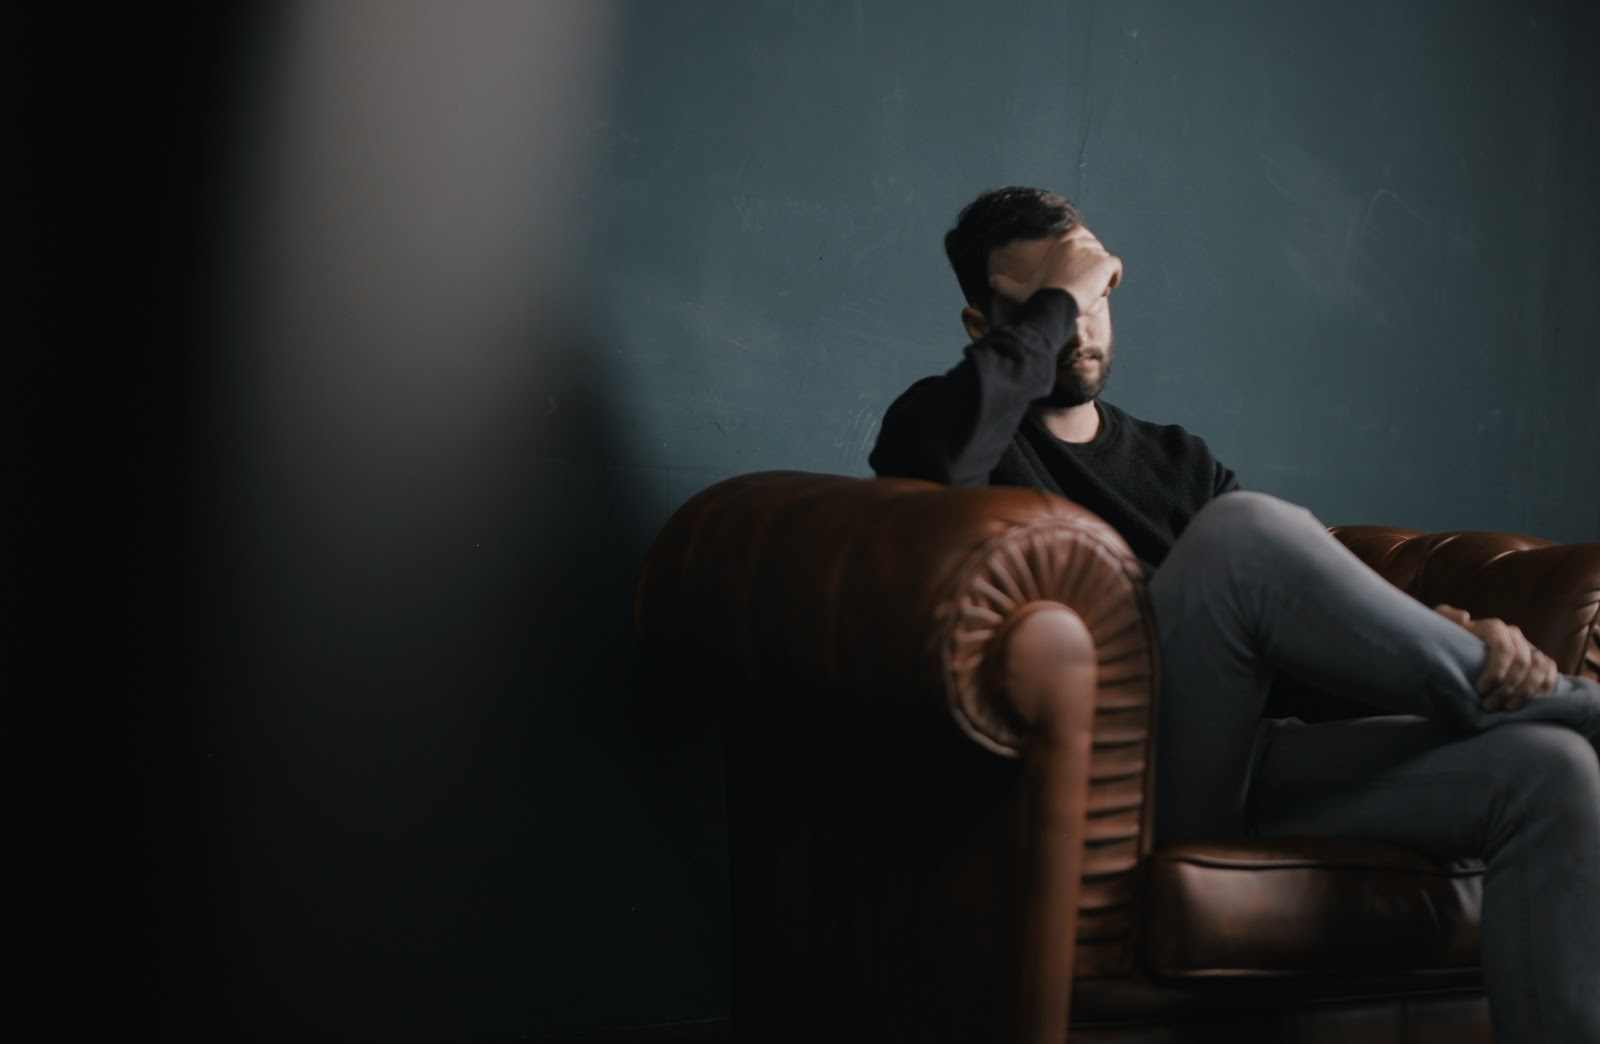 Man sitting on a couch holding his hand to his face.